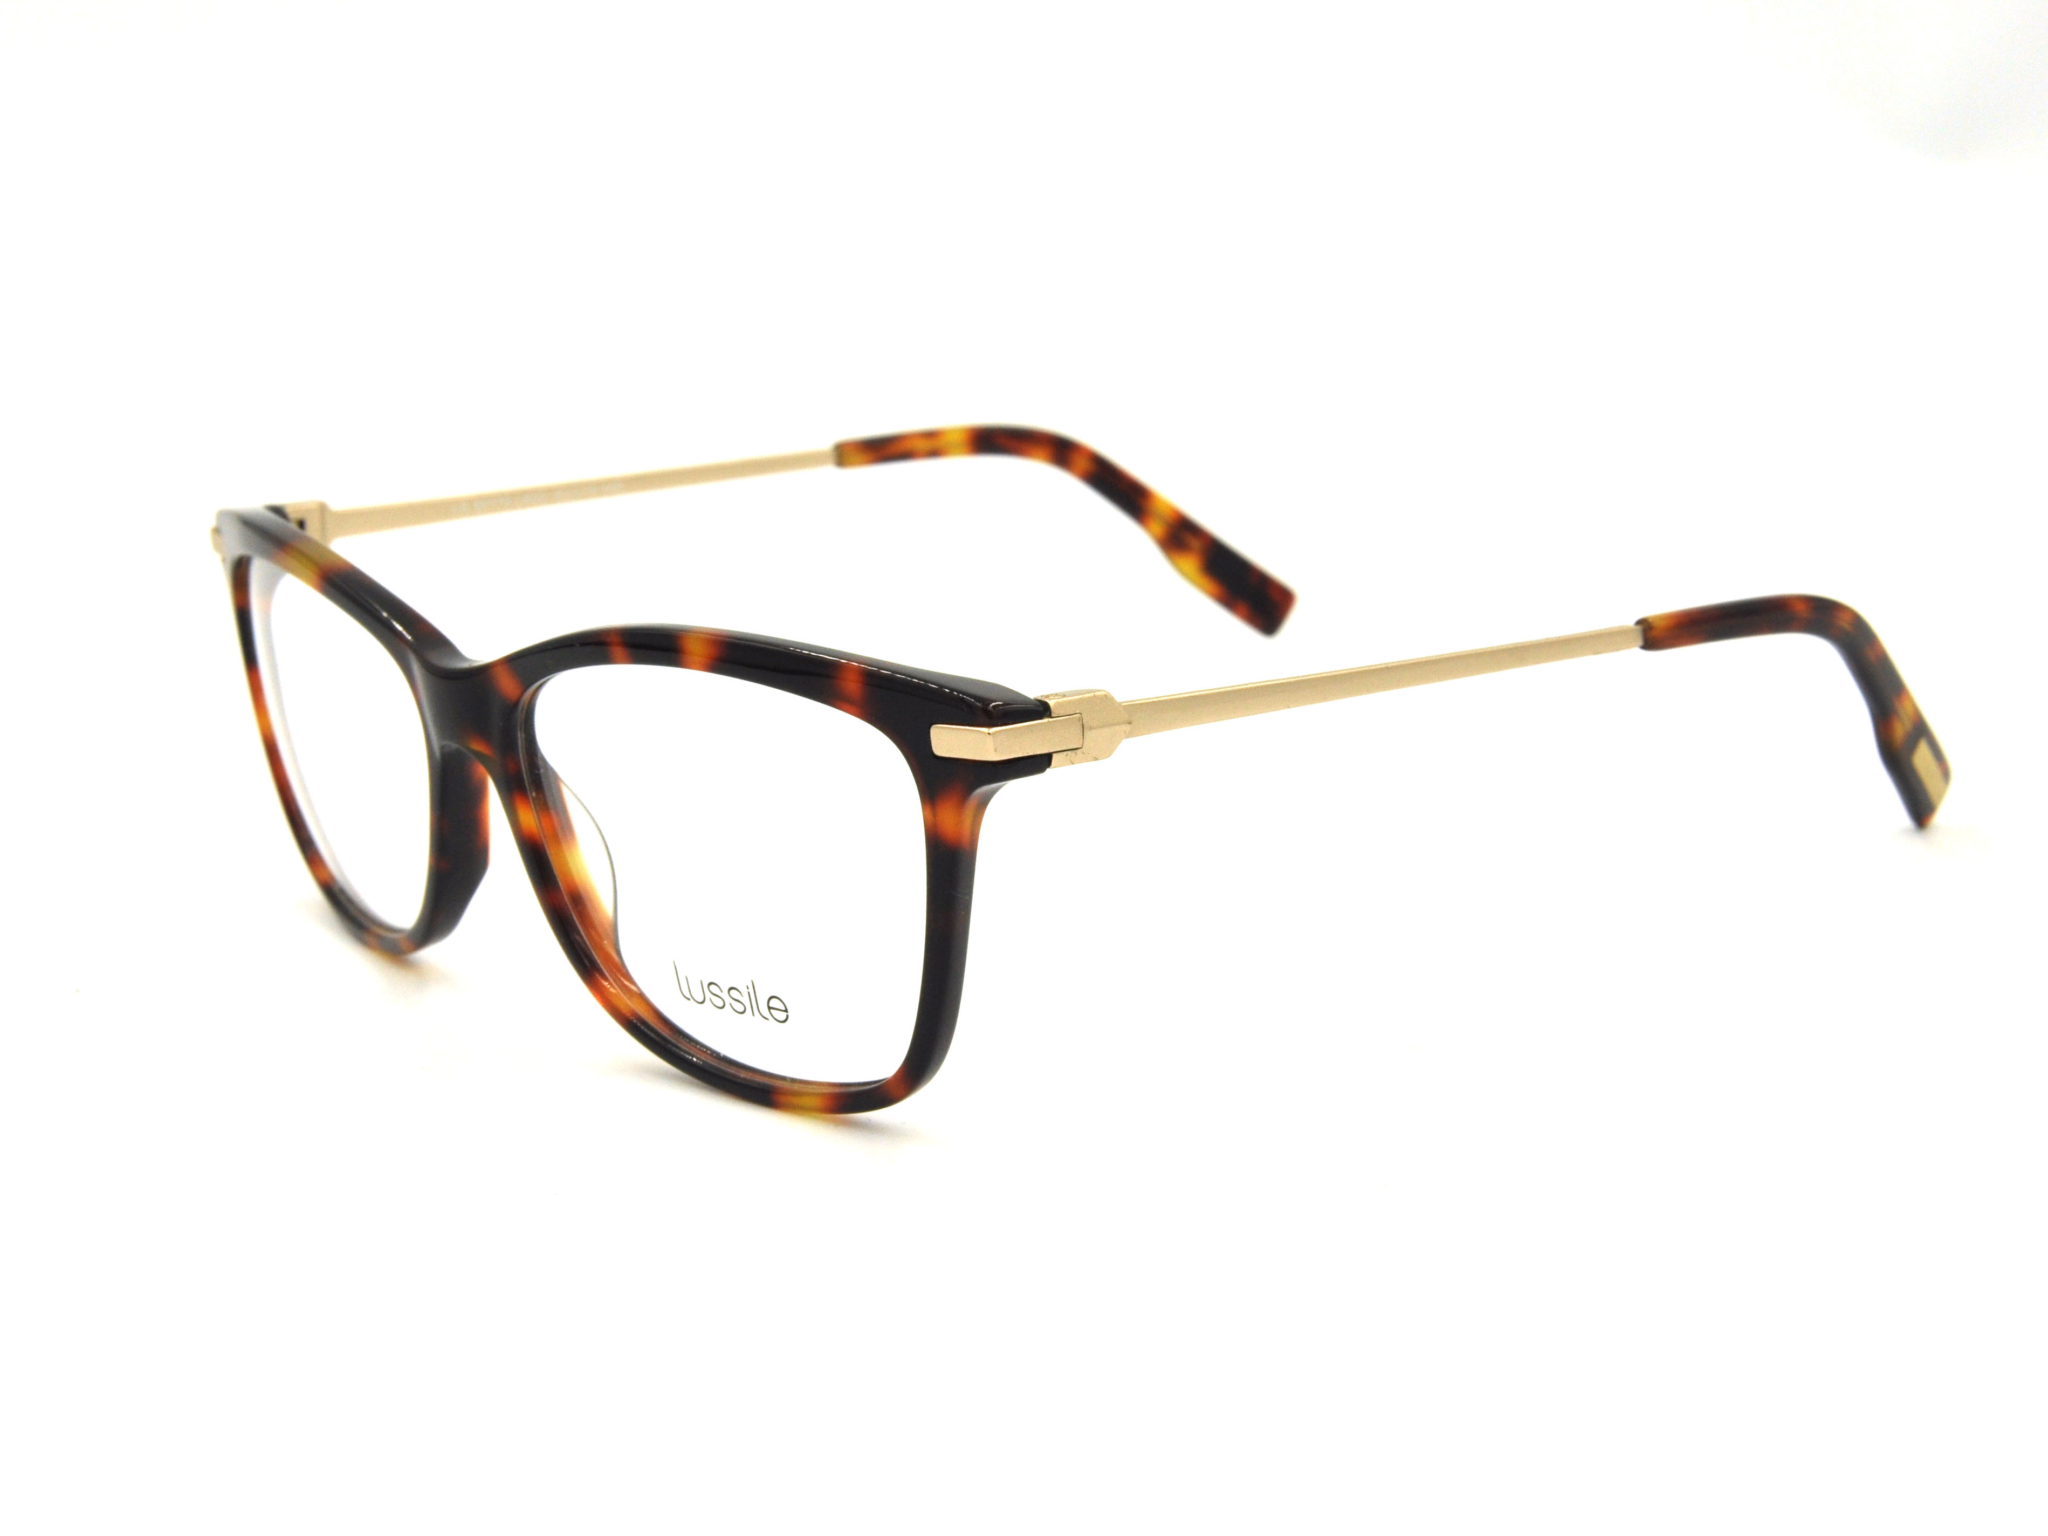 lussile ls32173 LK02 Prescription Glasses 2020